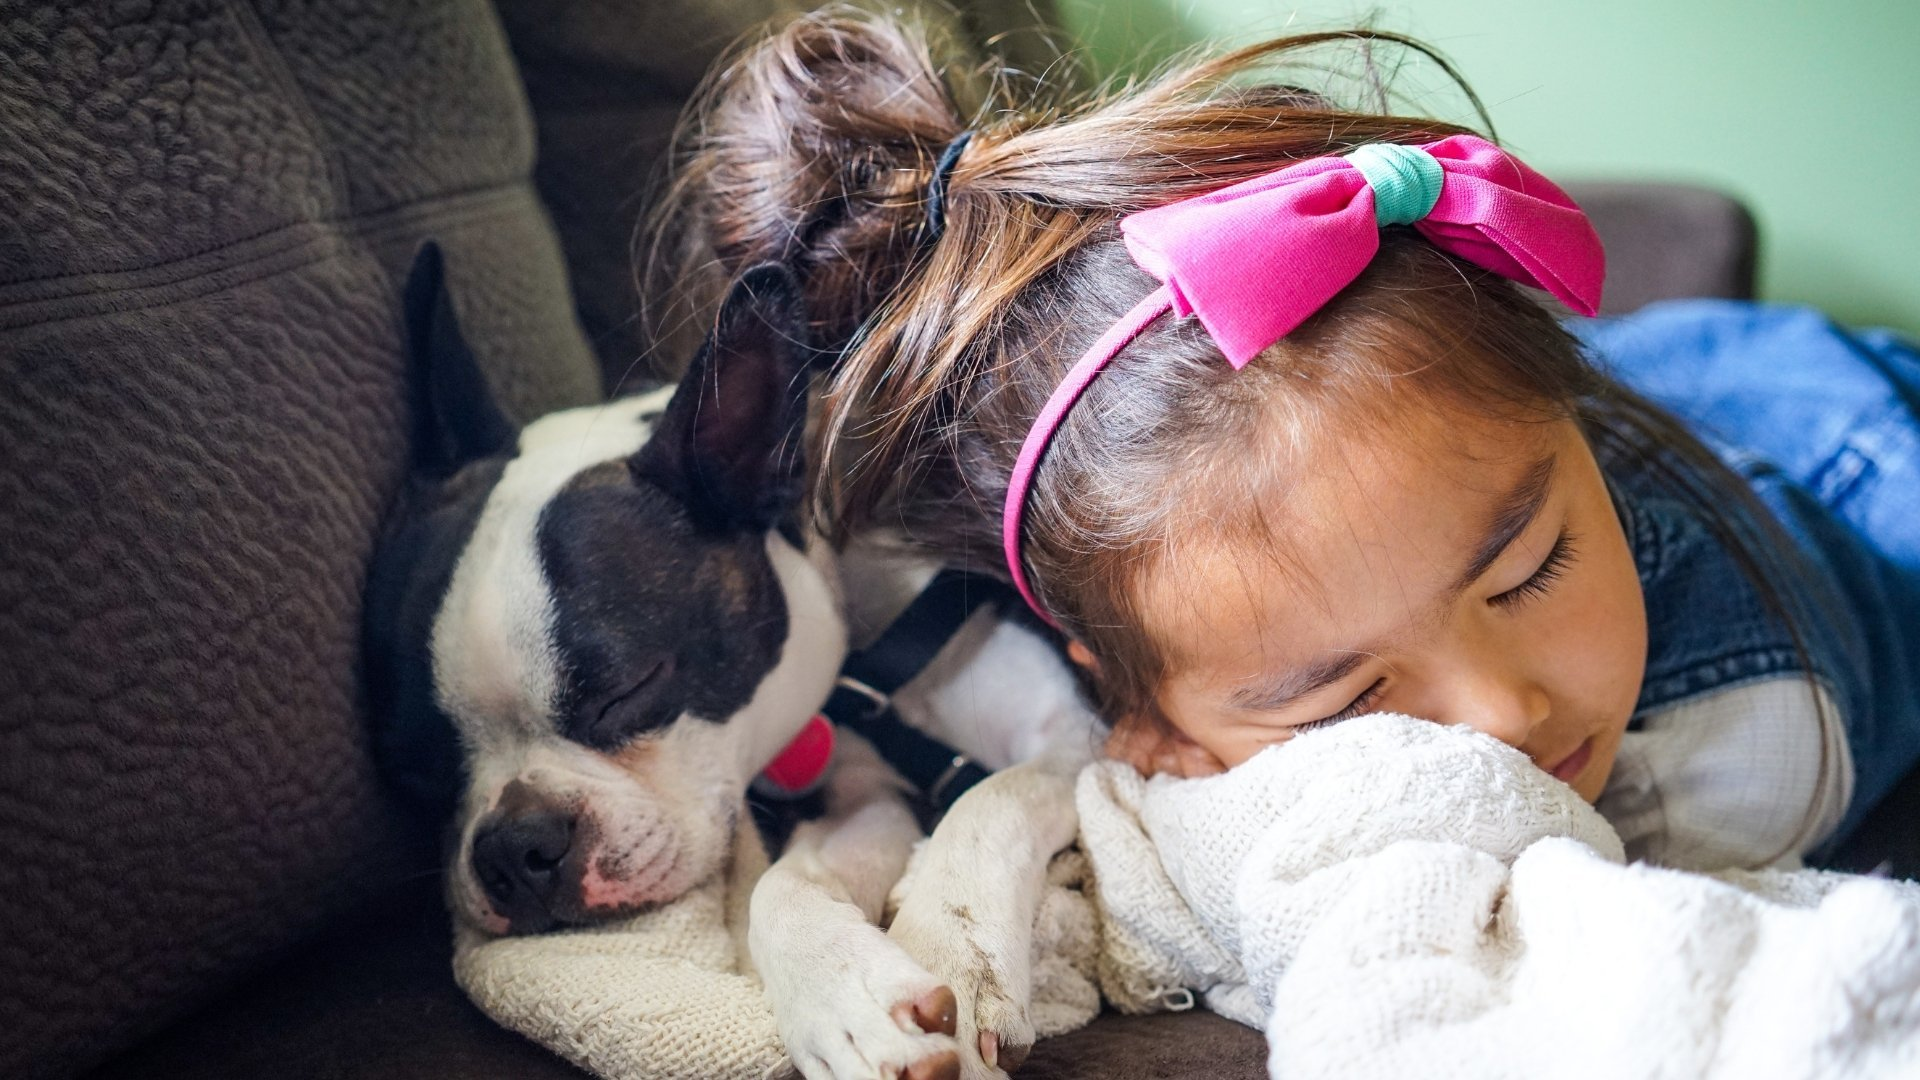 Girl Comfortably Sleeping with Dog on Couch